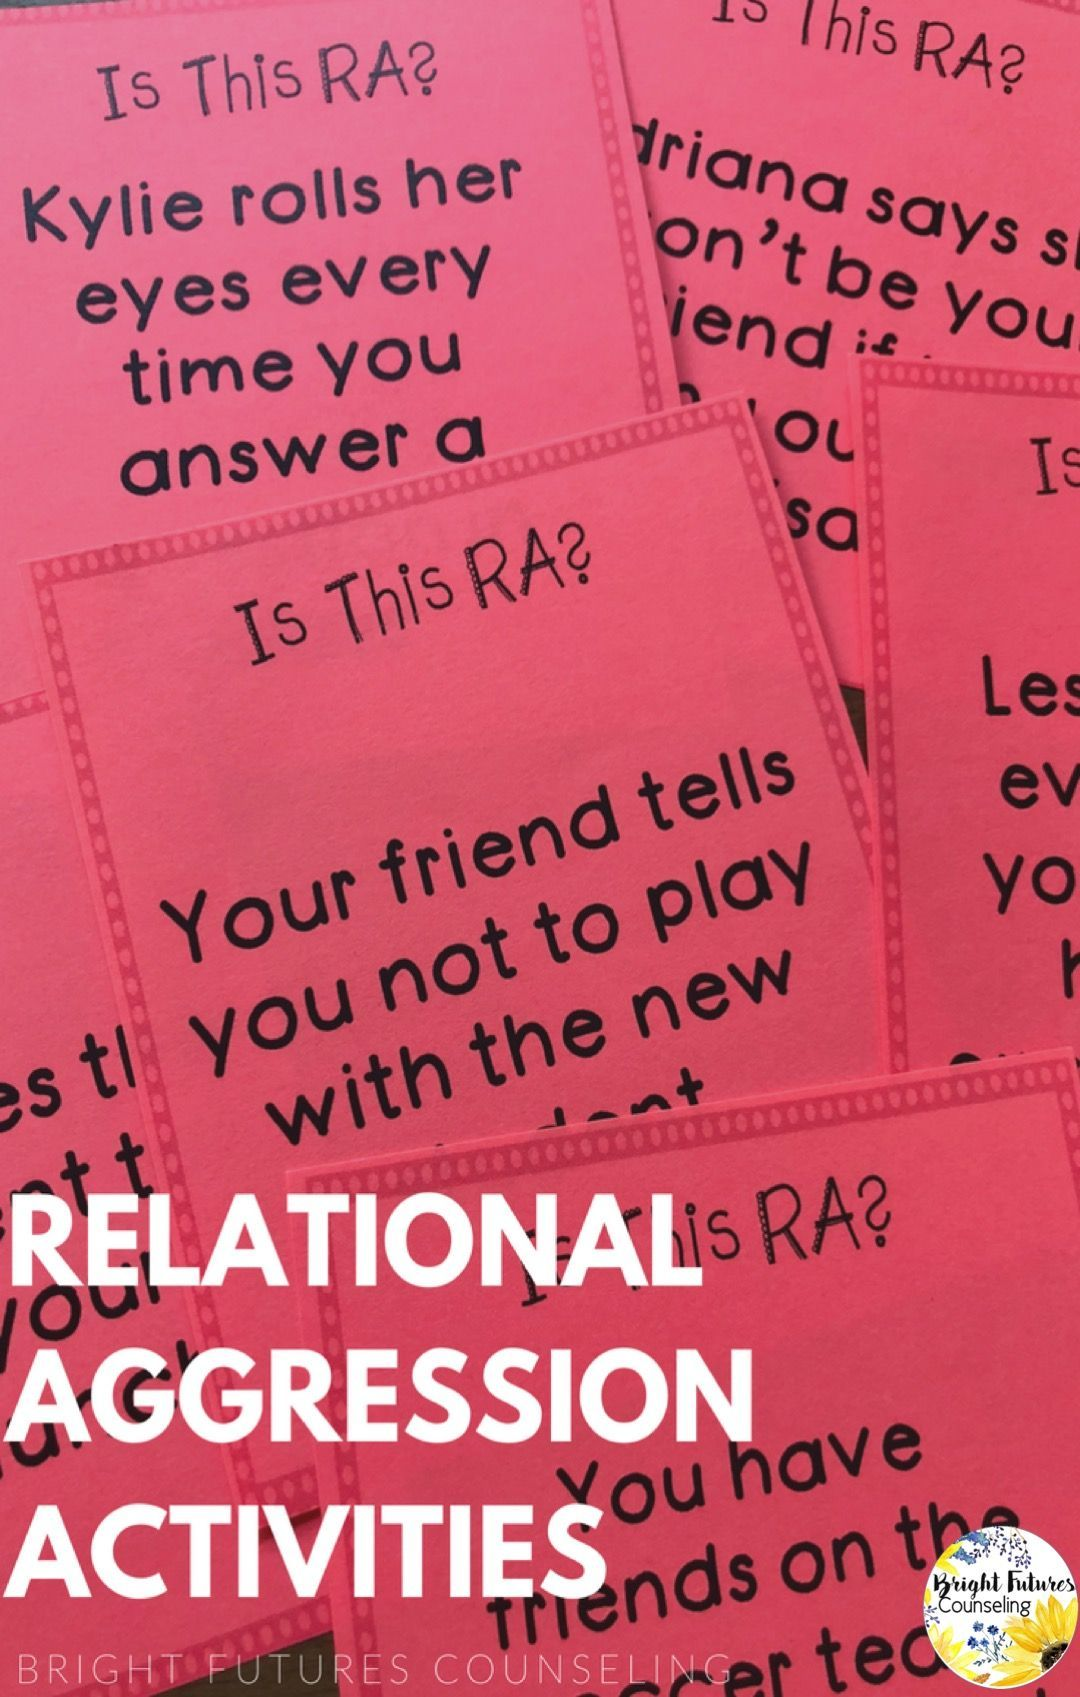 Relational Aggression Bullying Counseling Activities The